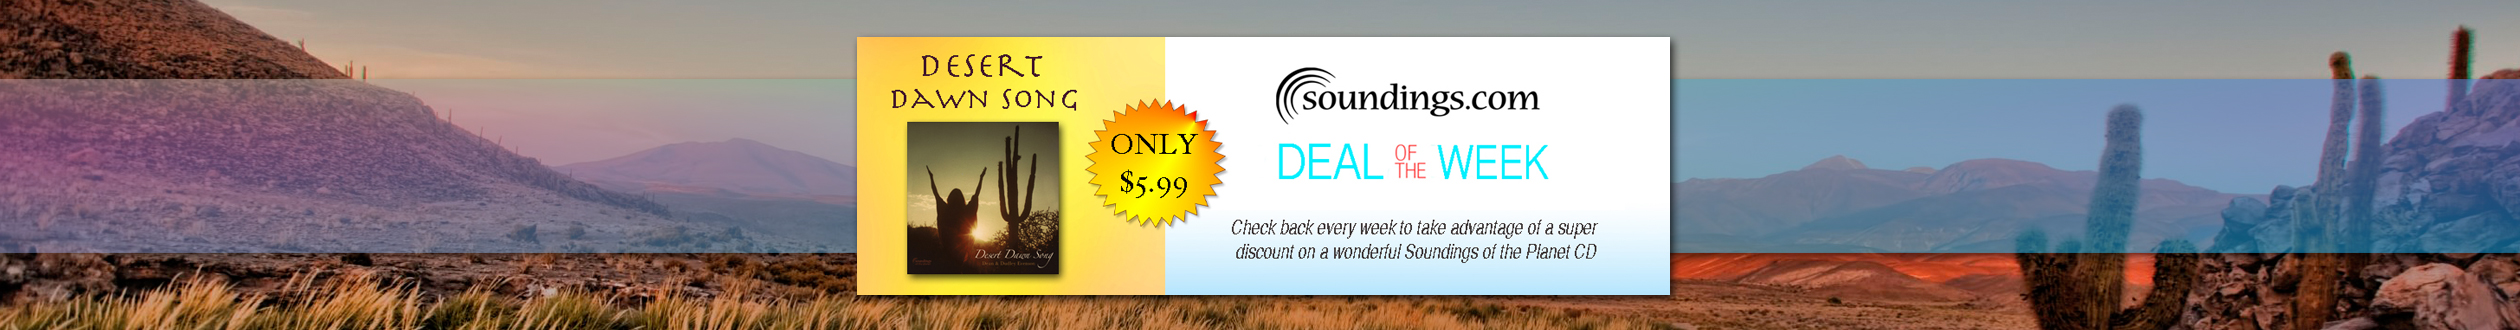 Deal-of-the-Week-Desert-Dawn-Song-Full-Slider_